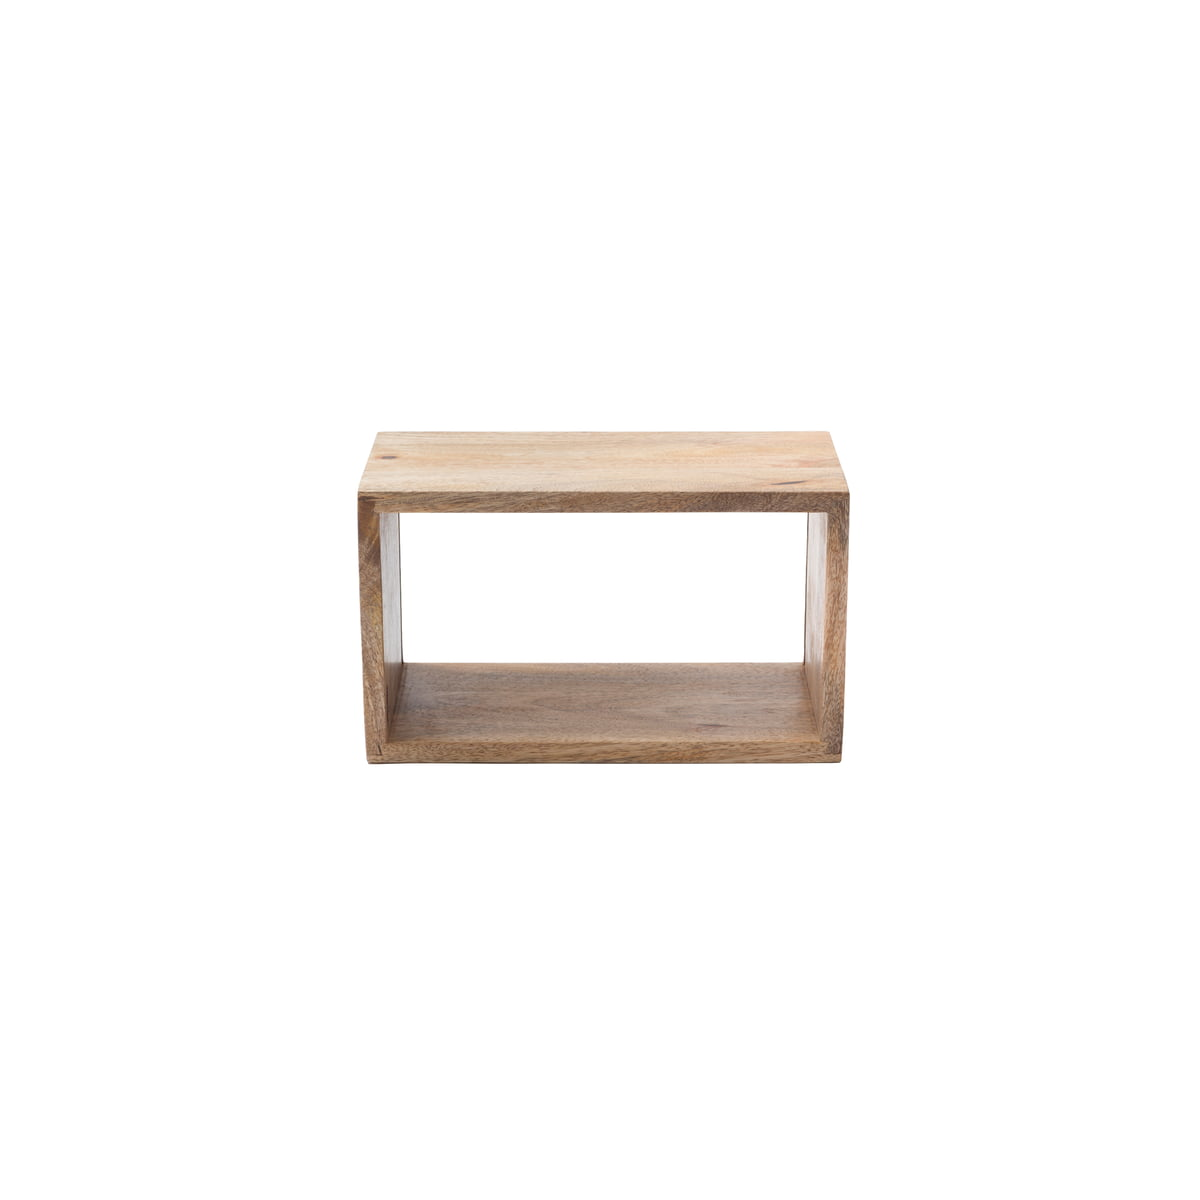 Box System Shelf By Mater In Our Interior Design Shop